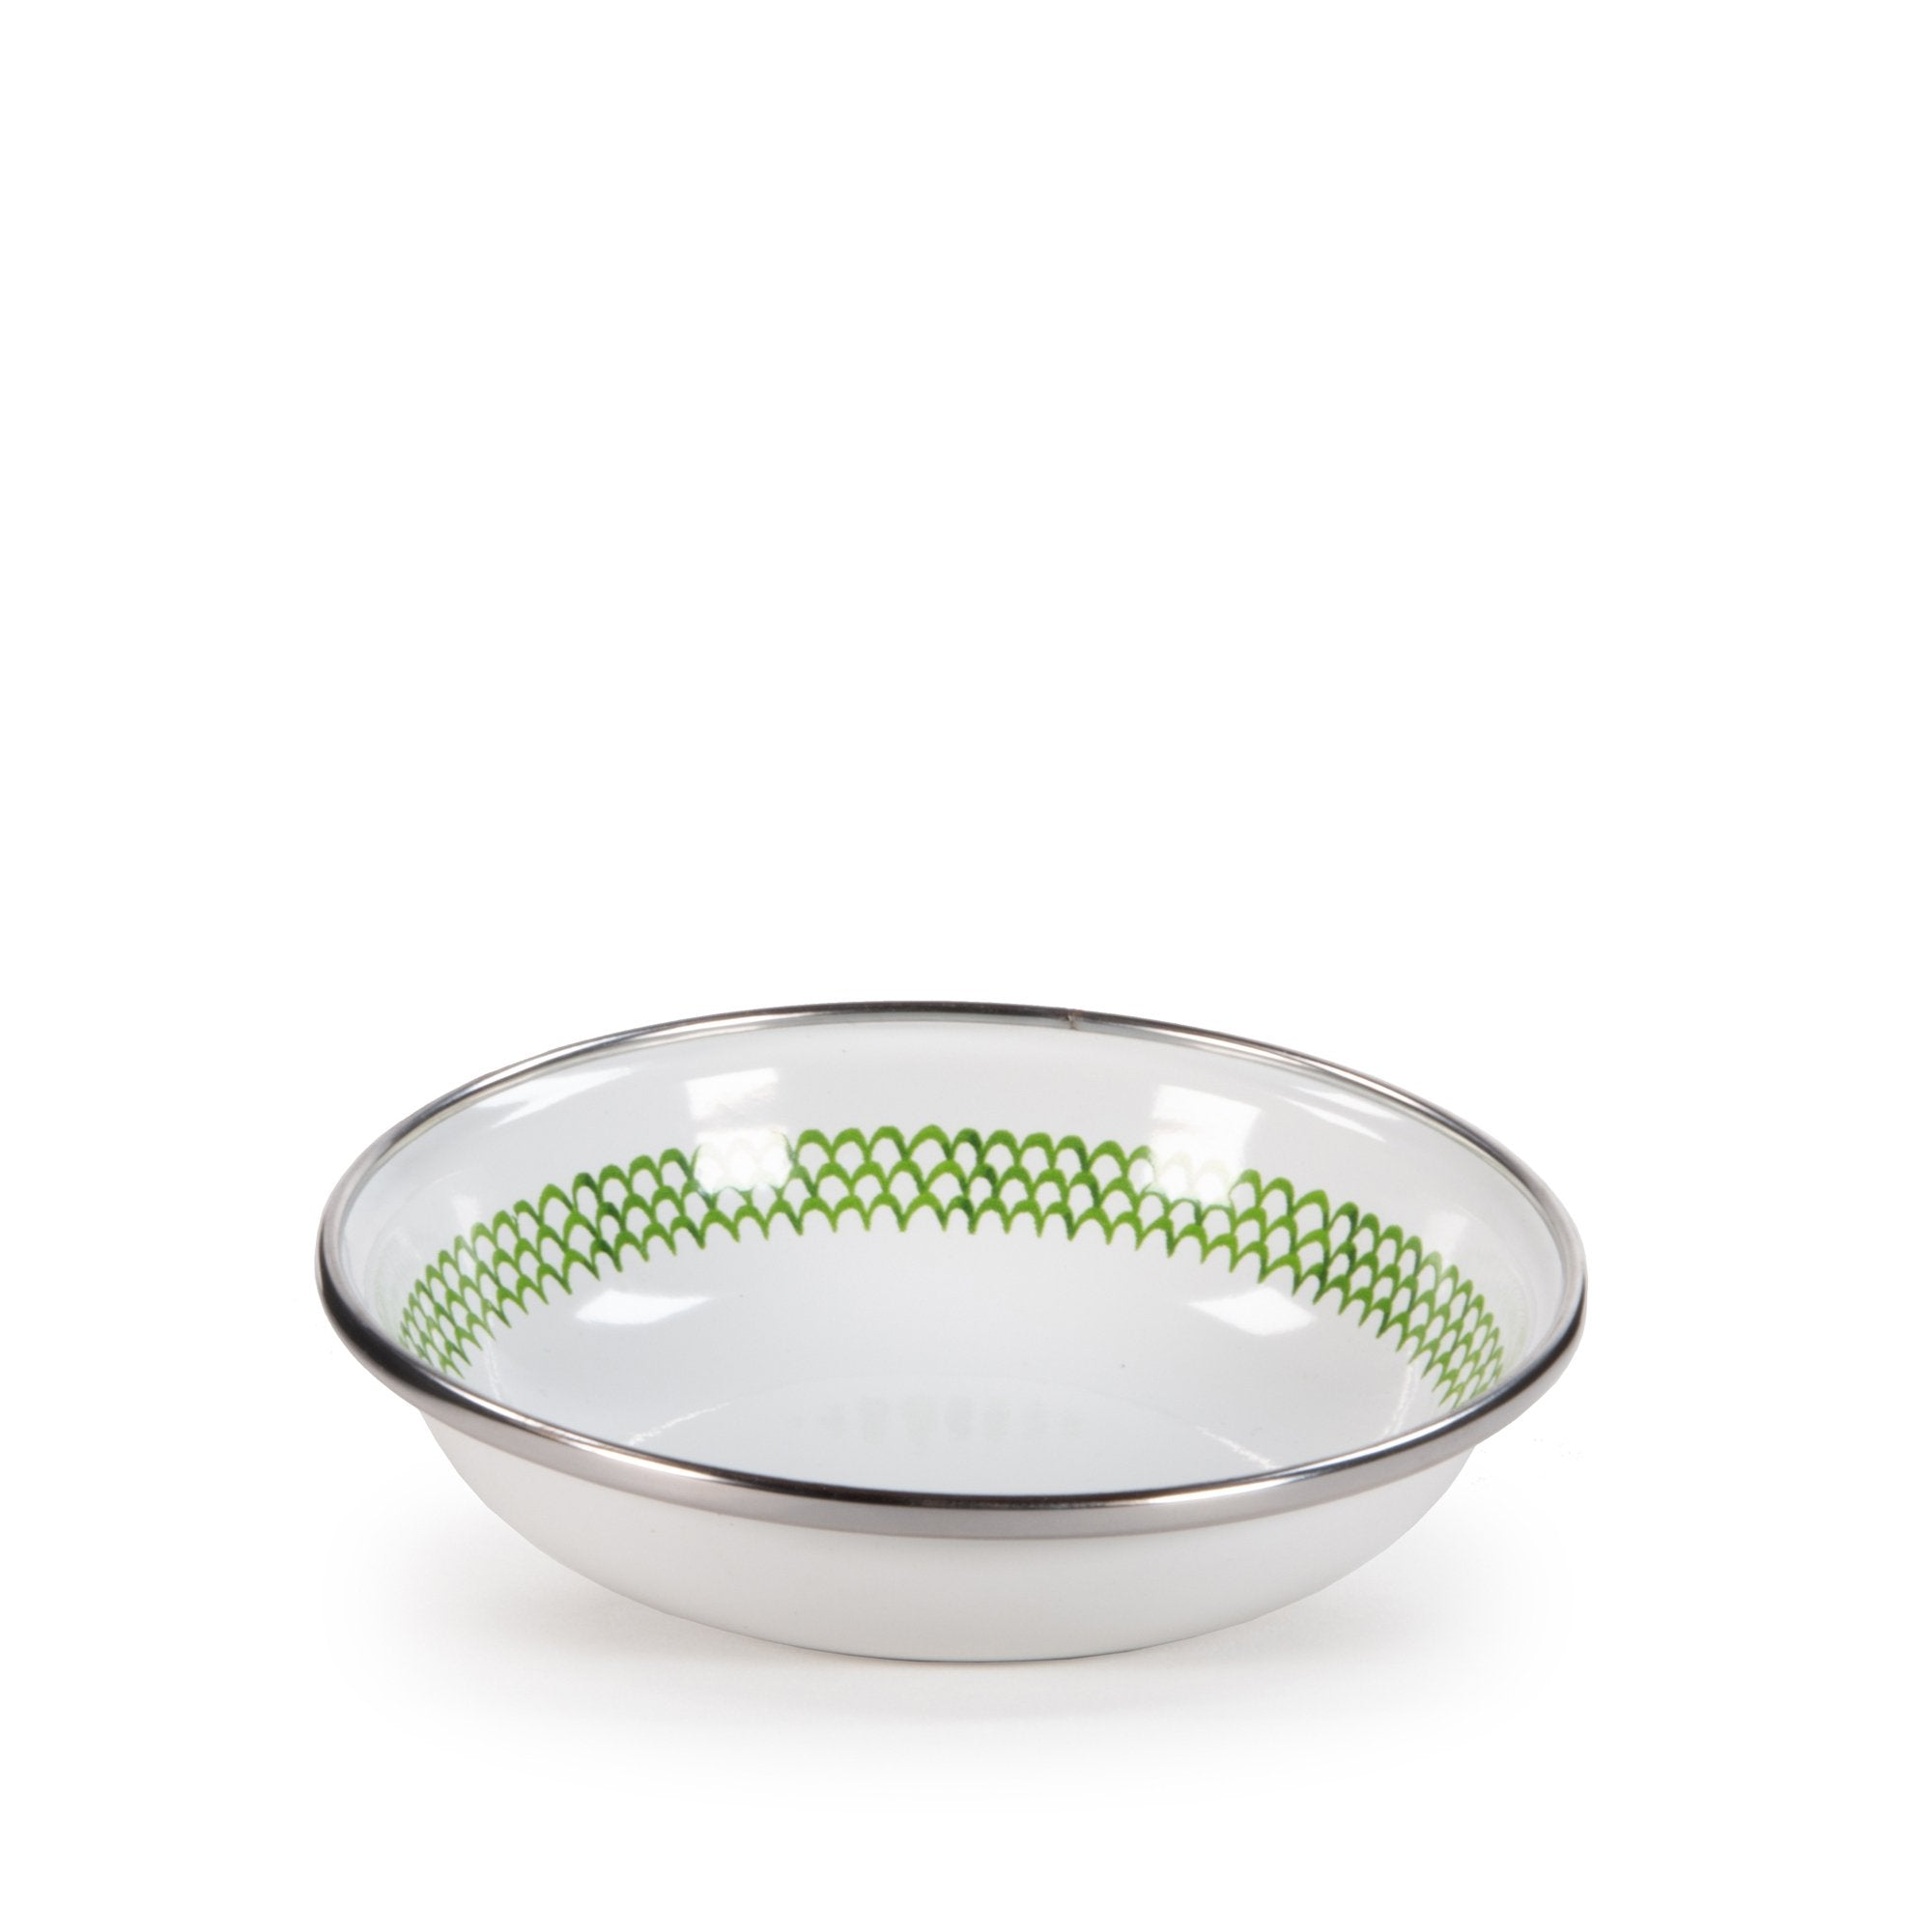 GS59 - Green Scallop Pattern - Tasting Dish